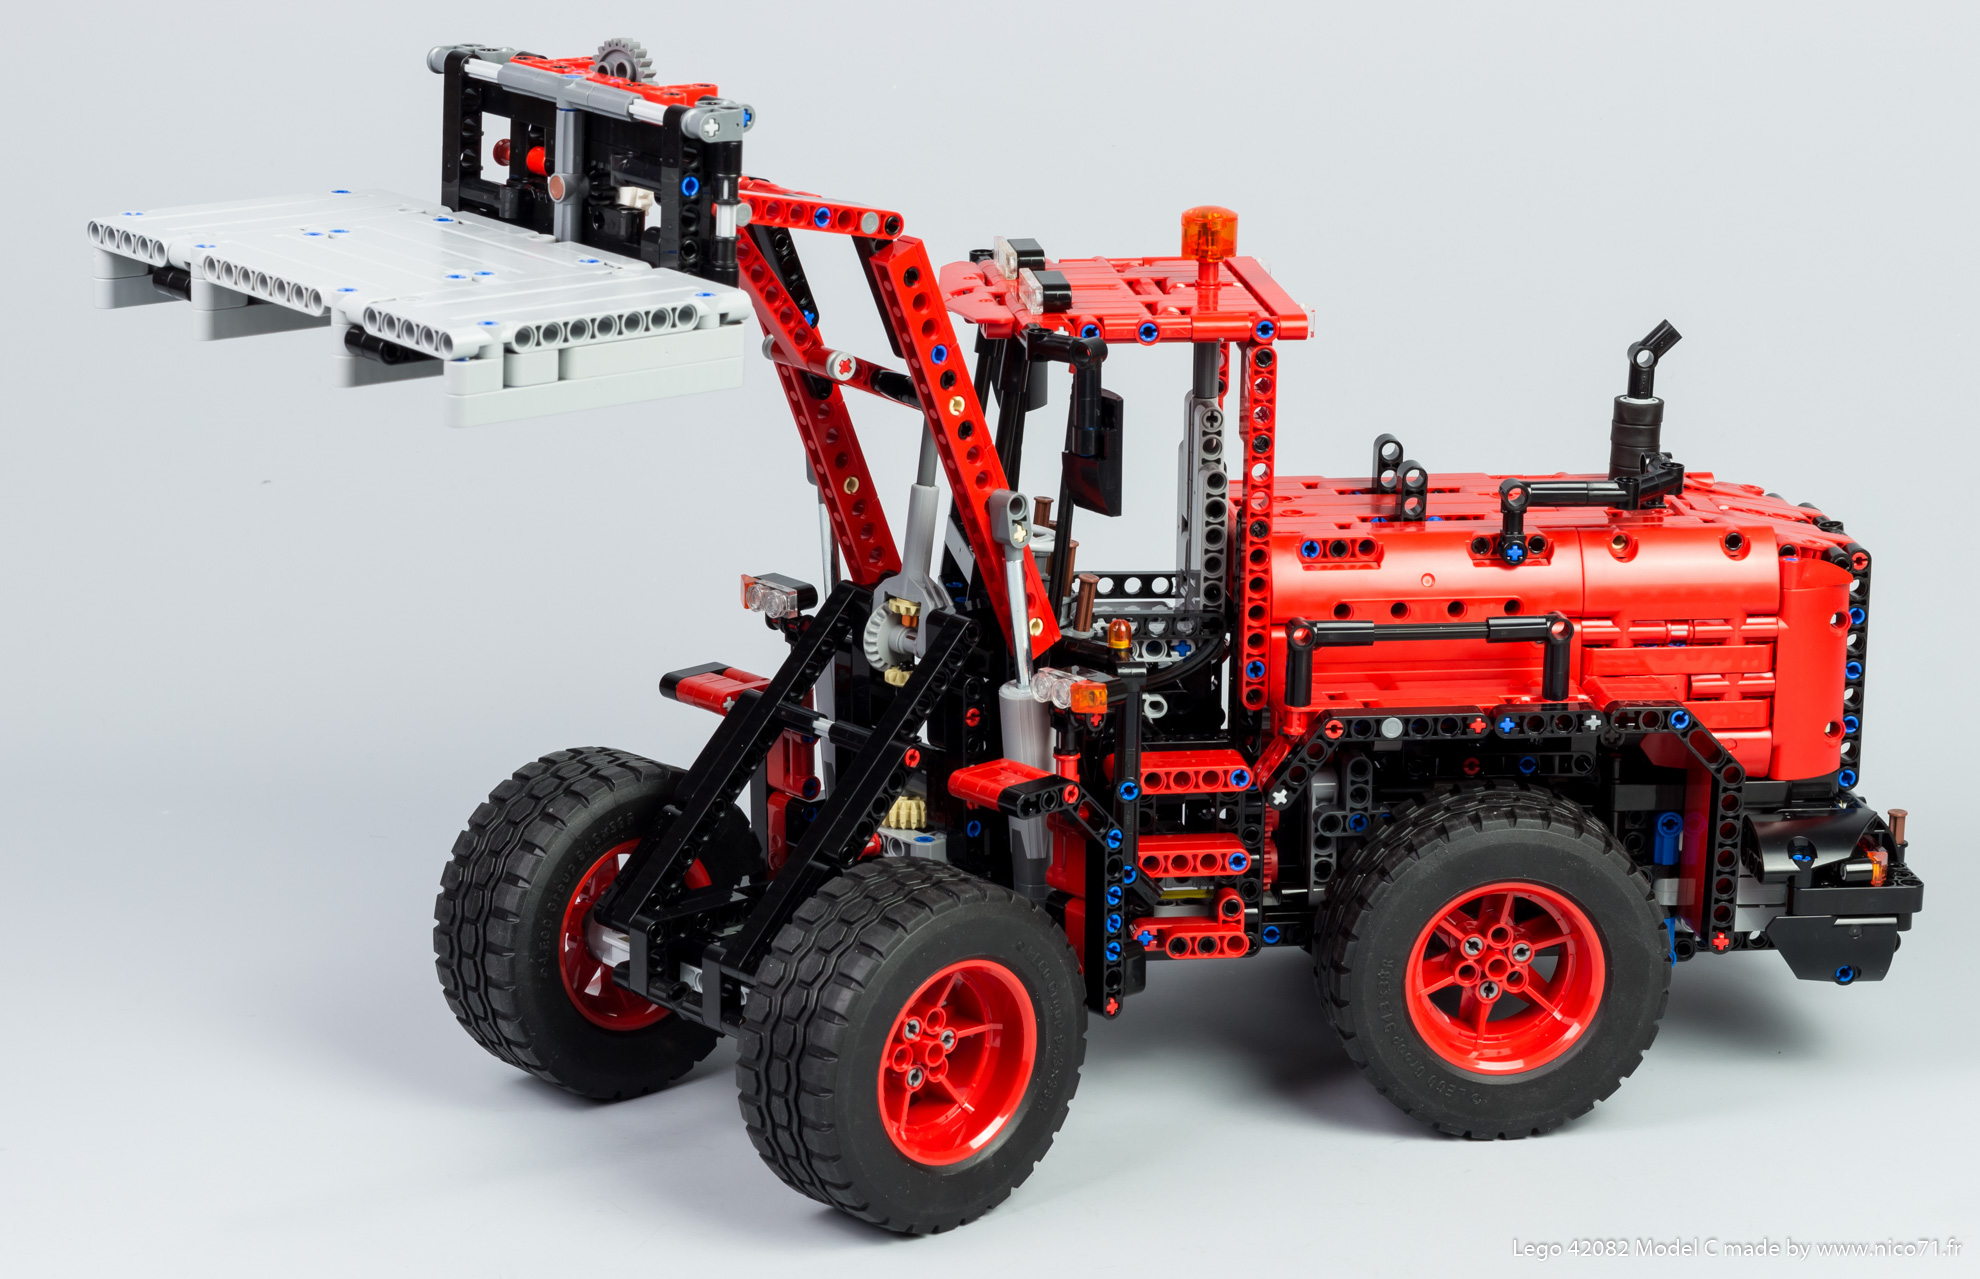 TECHNIC MOC 18978 42082 Model C Wheel Loader by Nico71 MOCBRICKLAND